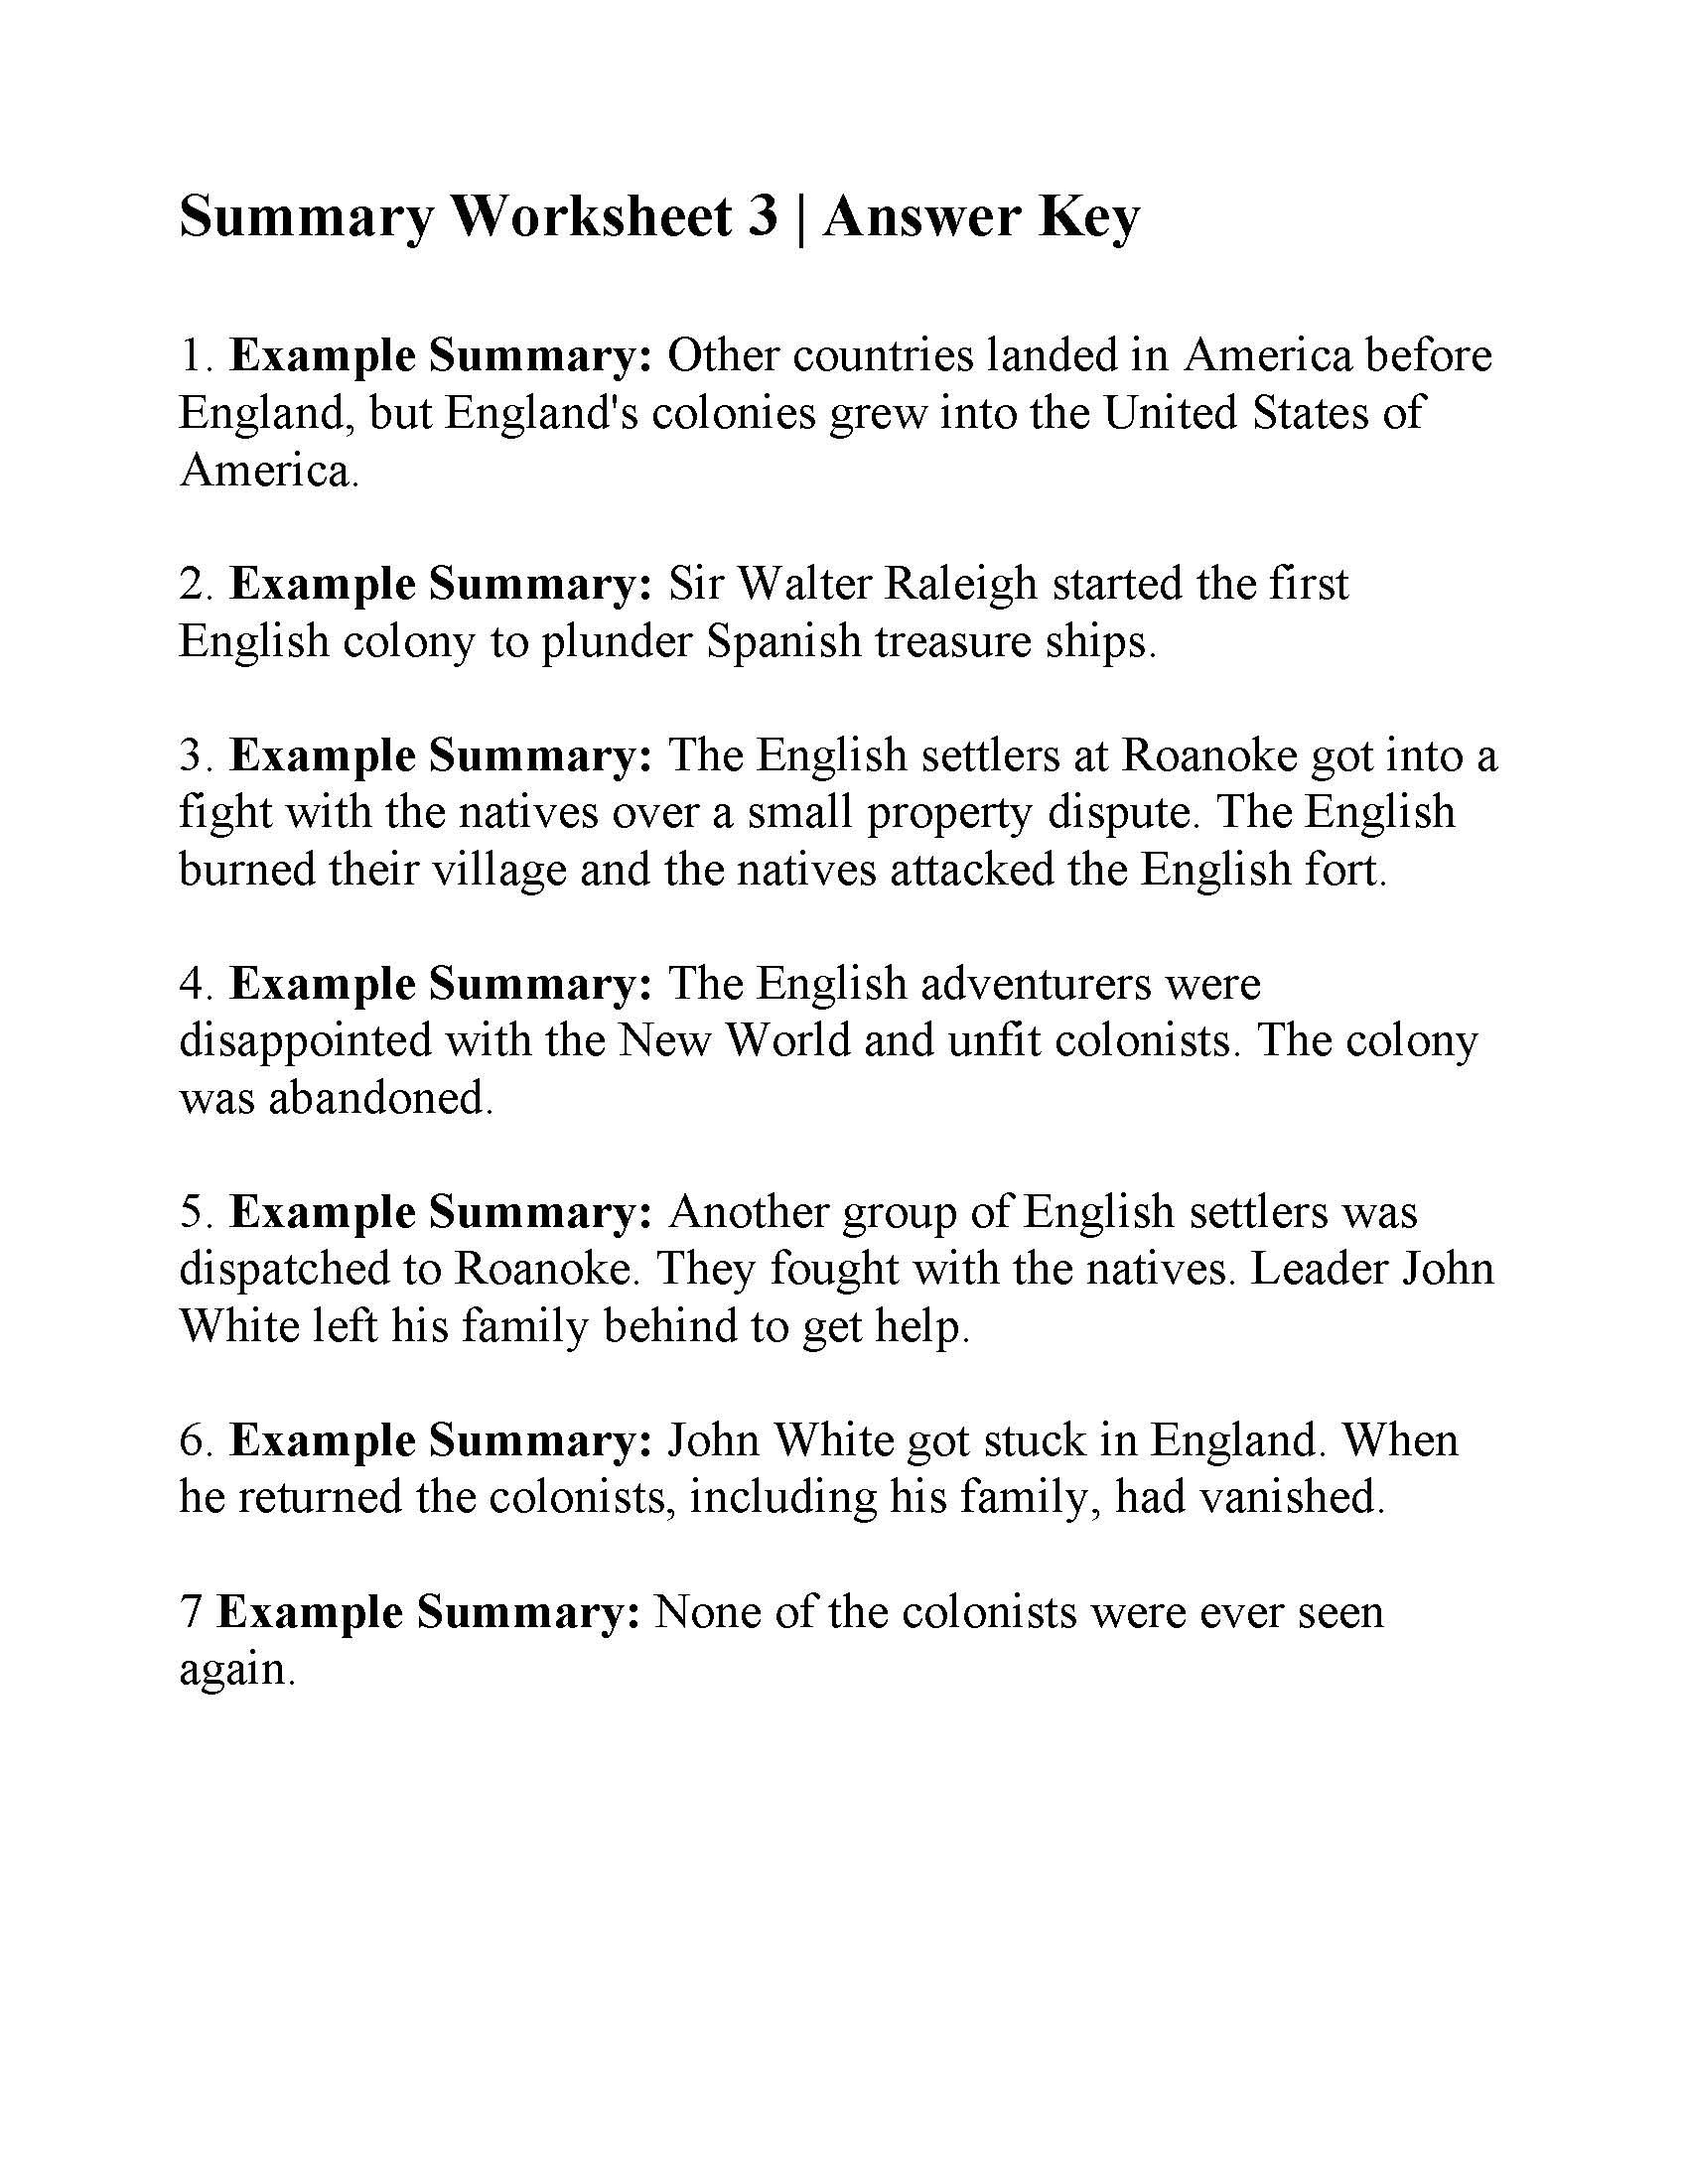 This Is The Answer Key For The Summary Worksheet 3